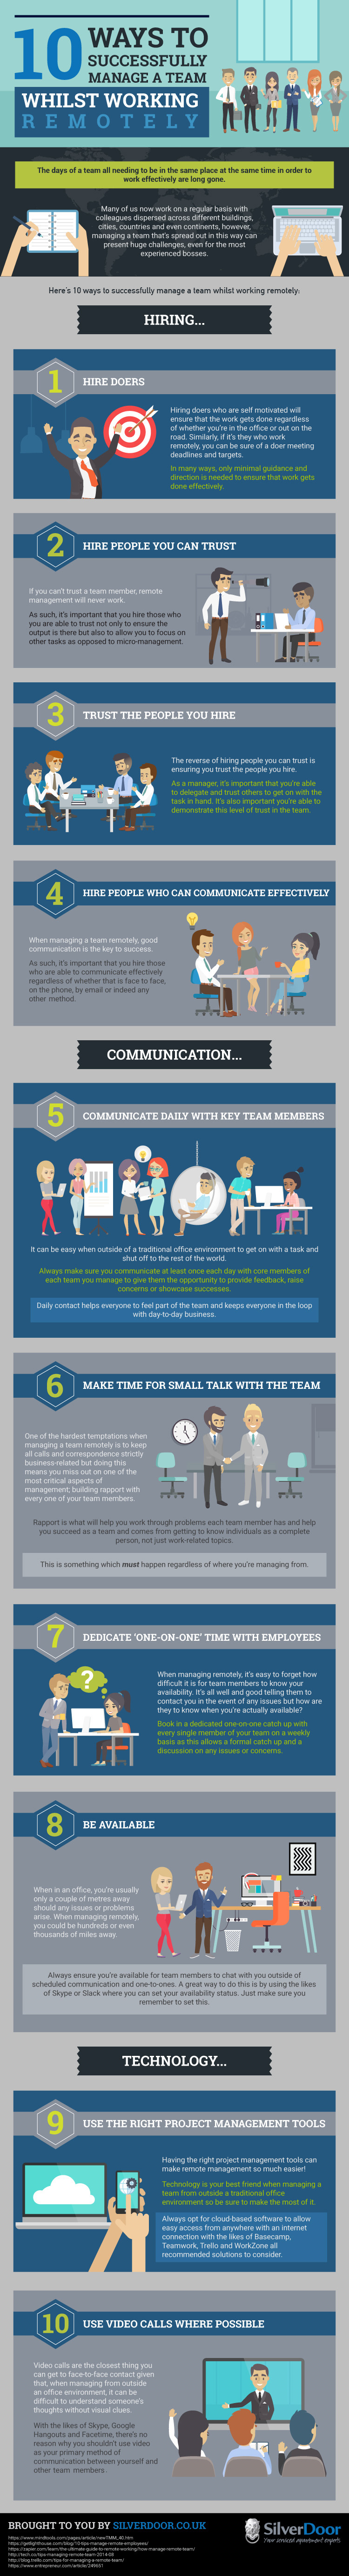 10-ways-to-successfully-manage-a-team-whilst-working-remotely